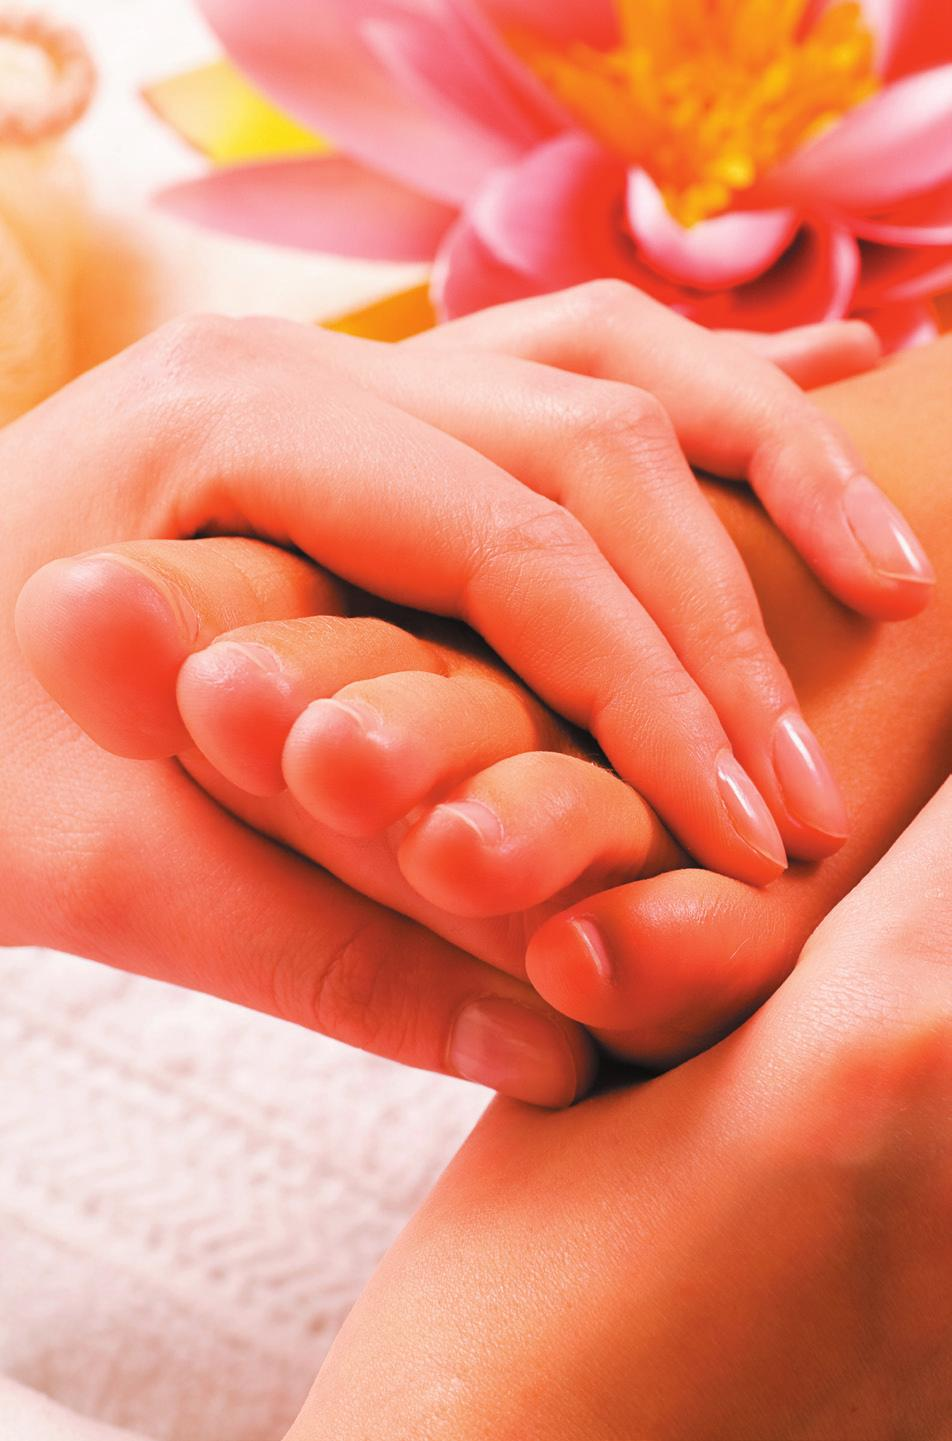 NAIL CARE TREATMENT Deluxe Manicure 60 minutes THB 700 PER PERSON The standard yet definitive manicure experience comprises of a reviving exfoliation, nail filling and shaping, cuticle trim,